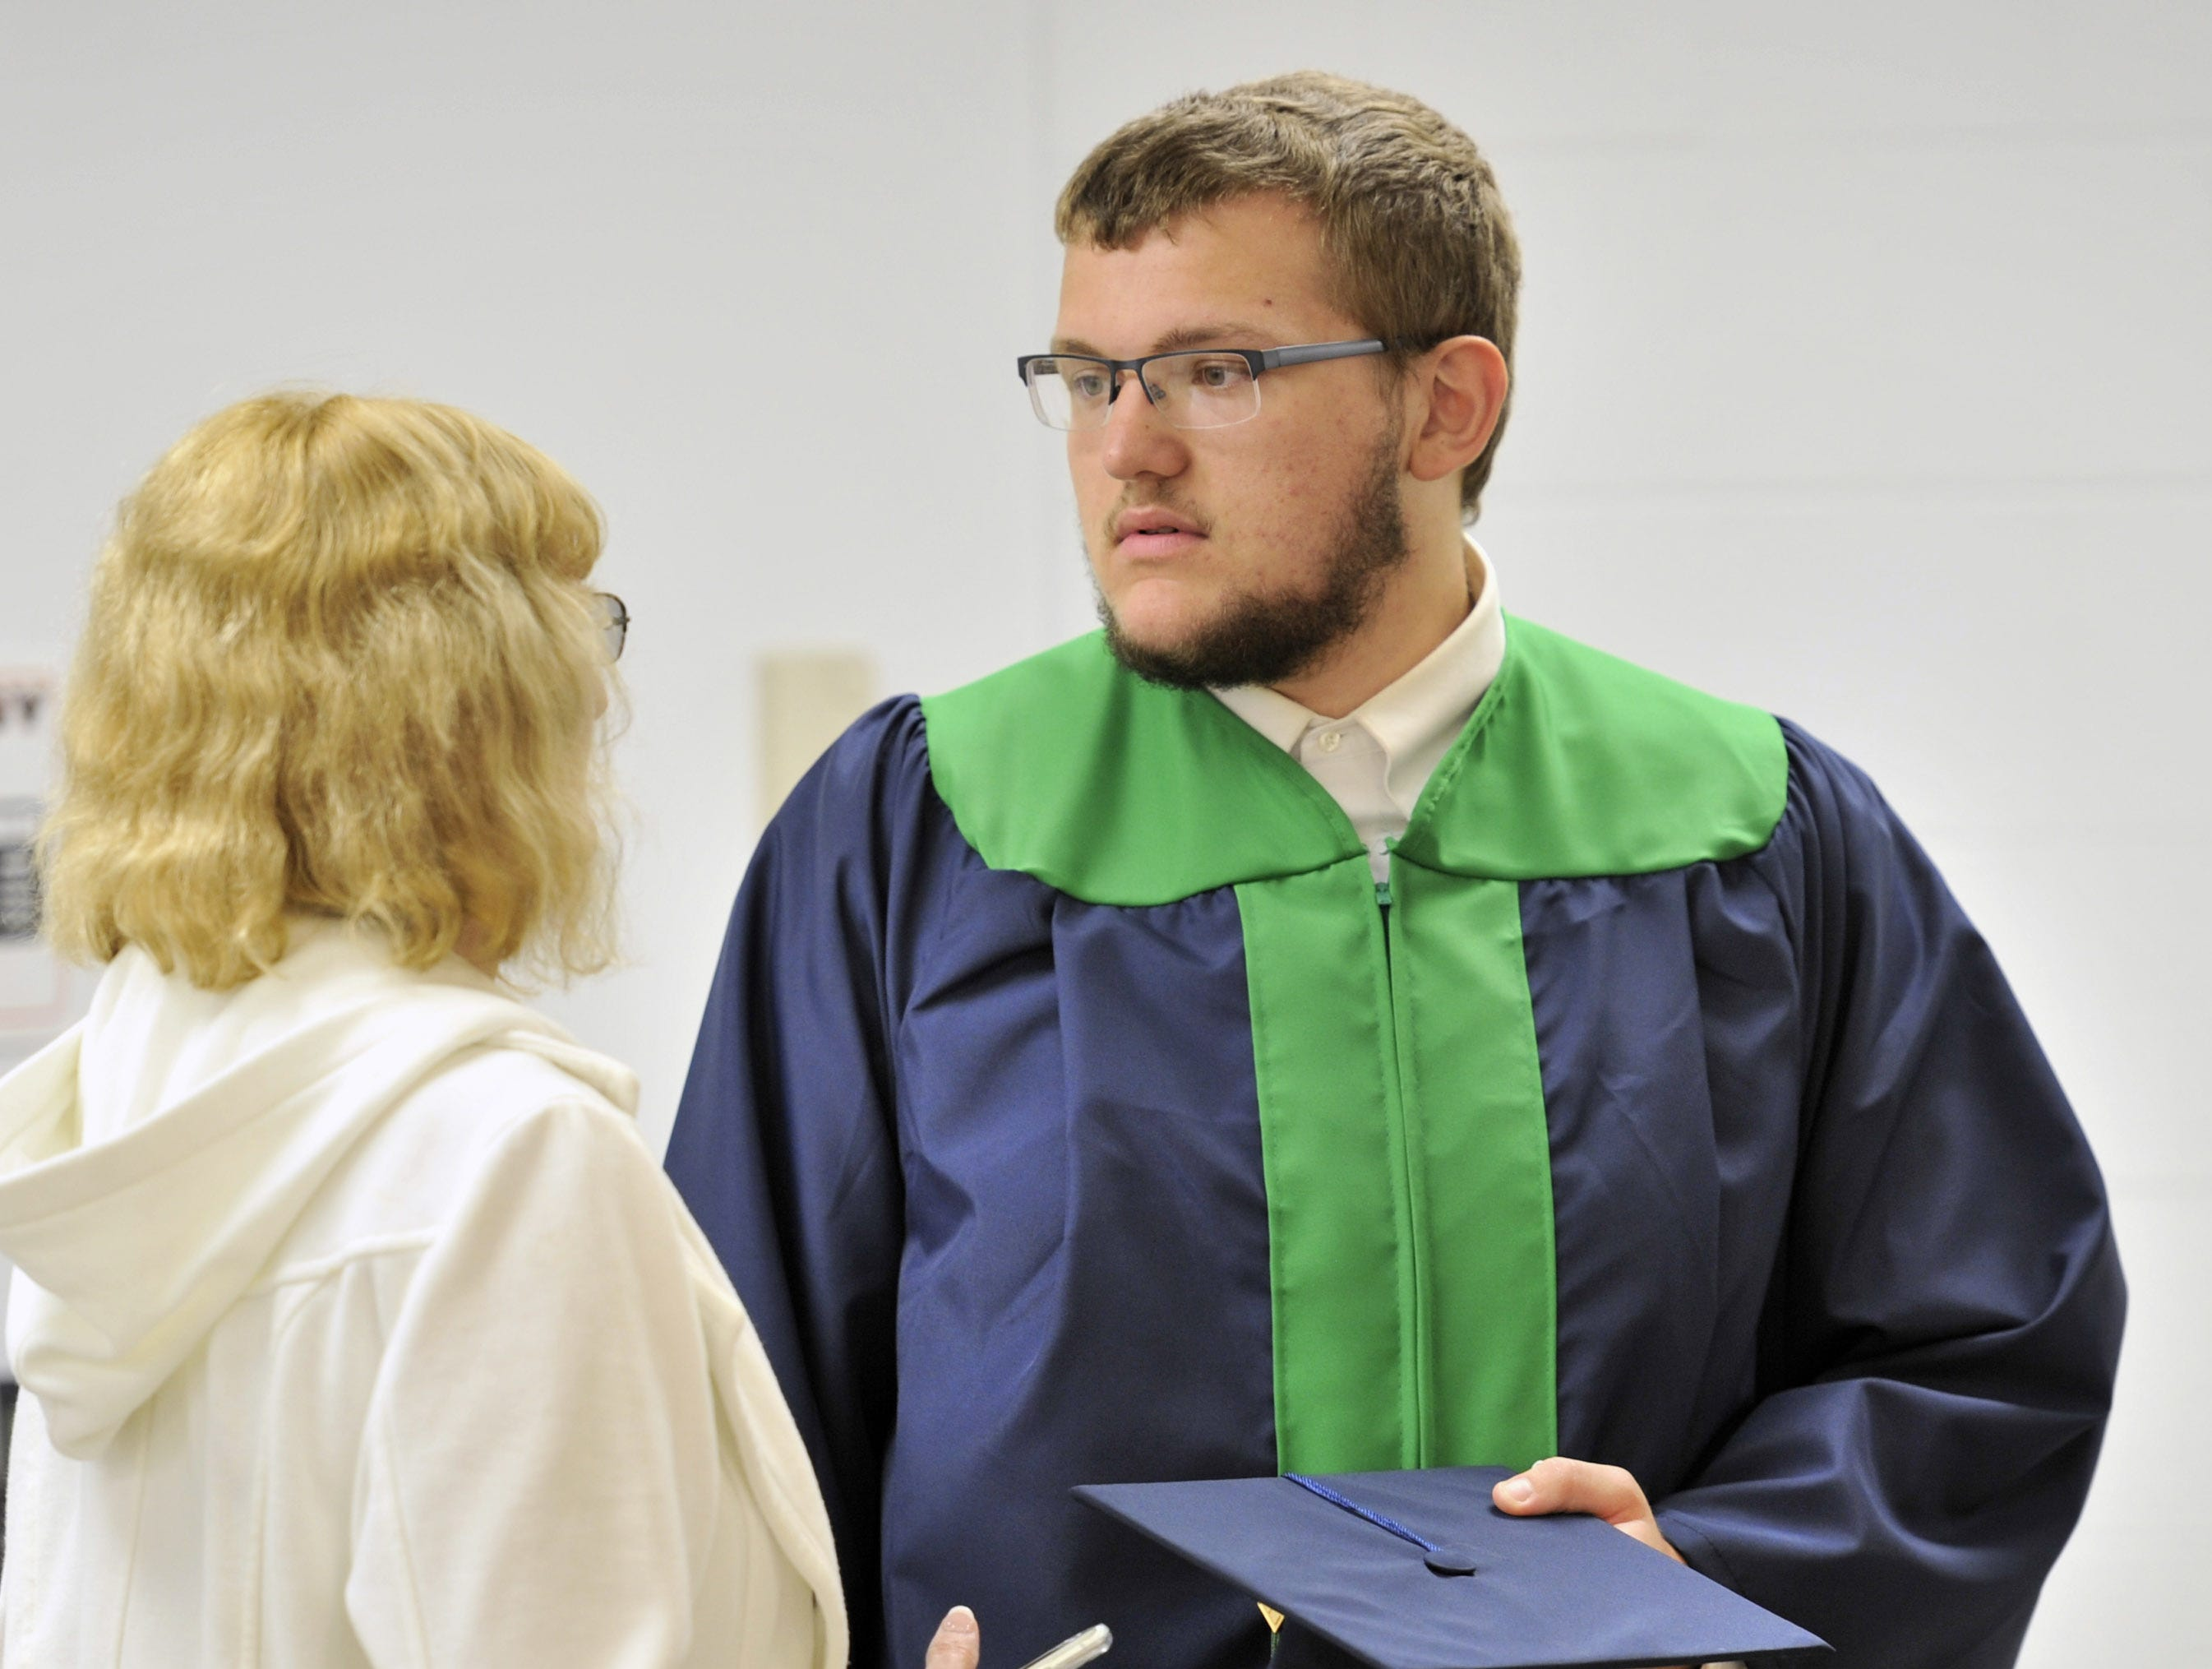 Adam Faulkner, of Hartly, getting ready for DelTech's commencement exercise Monday night.